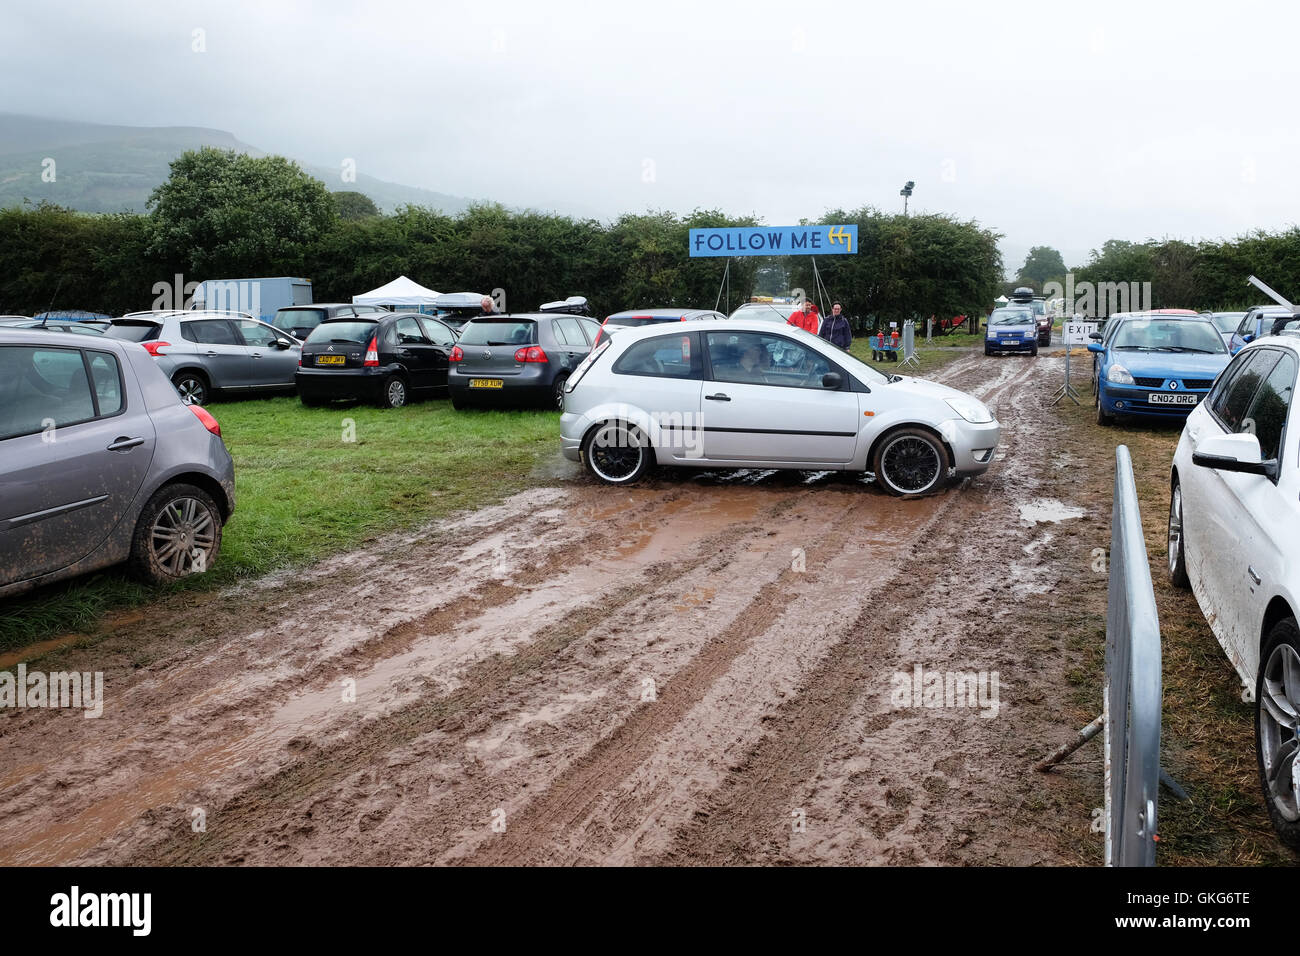 Green Man Festival, Crickhowell, Wales  - August 2016 - Heavy overnight rain has turned the car park routes into - Stock Image